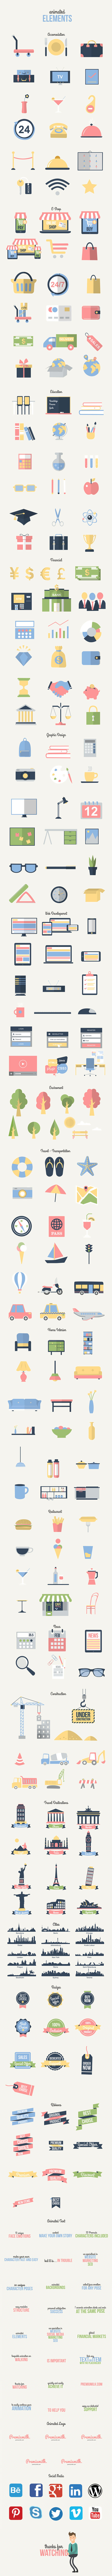 Hipster Explainer Toolkit & Flat Animated Icons Library - 15